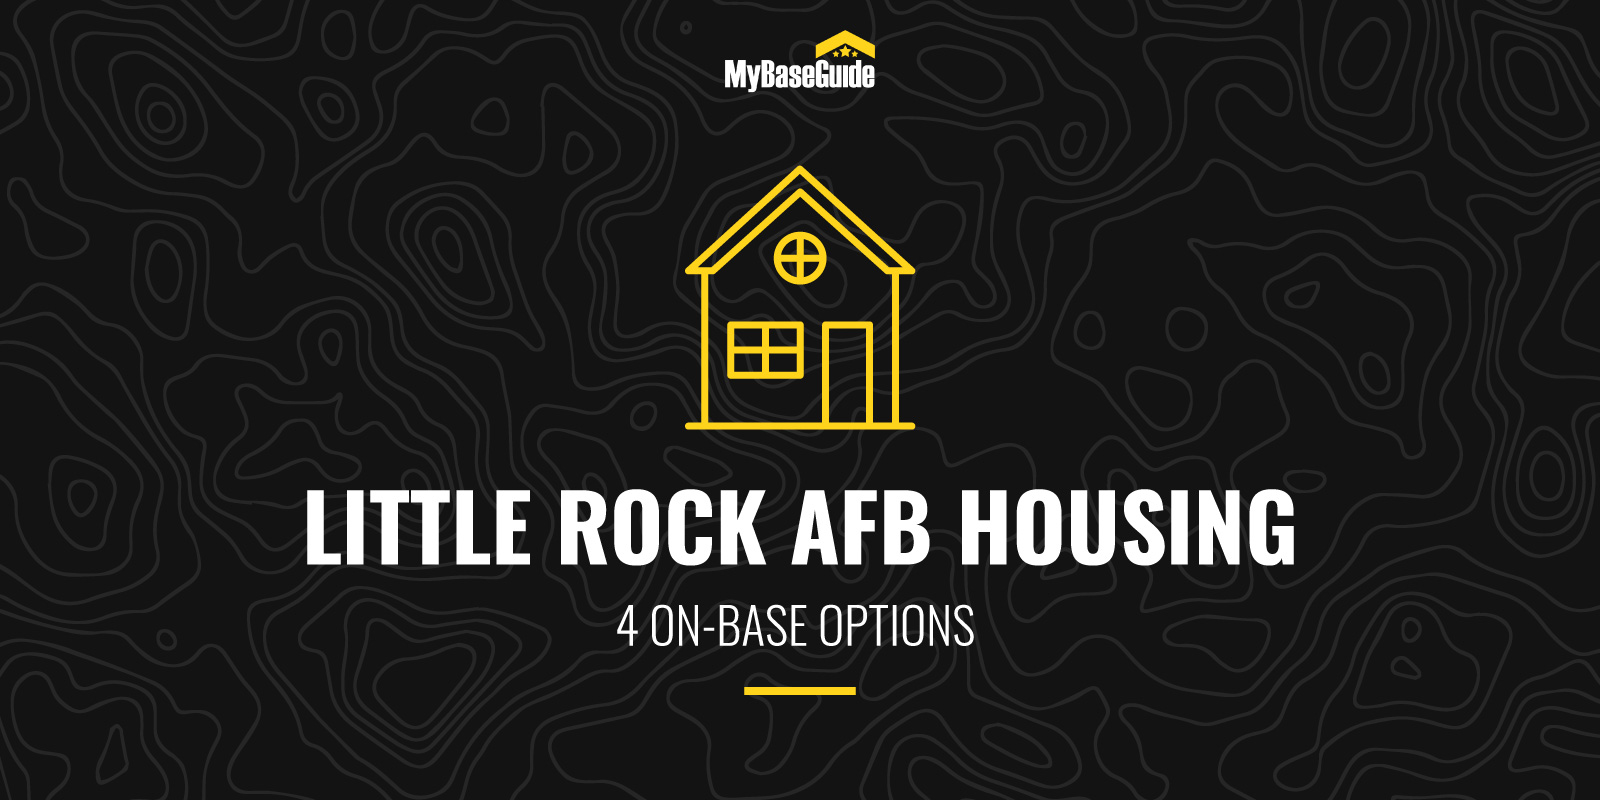 Little Rock AFB Housing: 4 On-Base Options